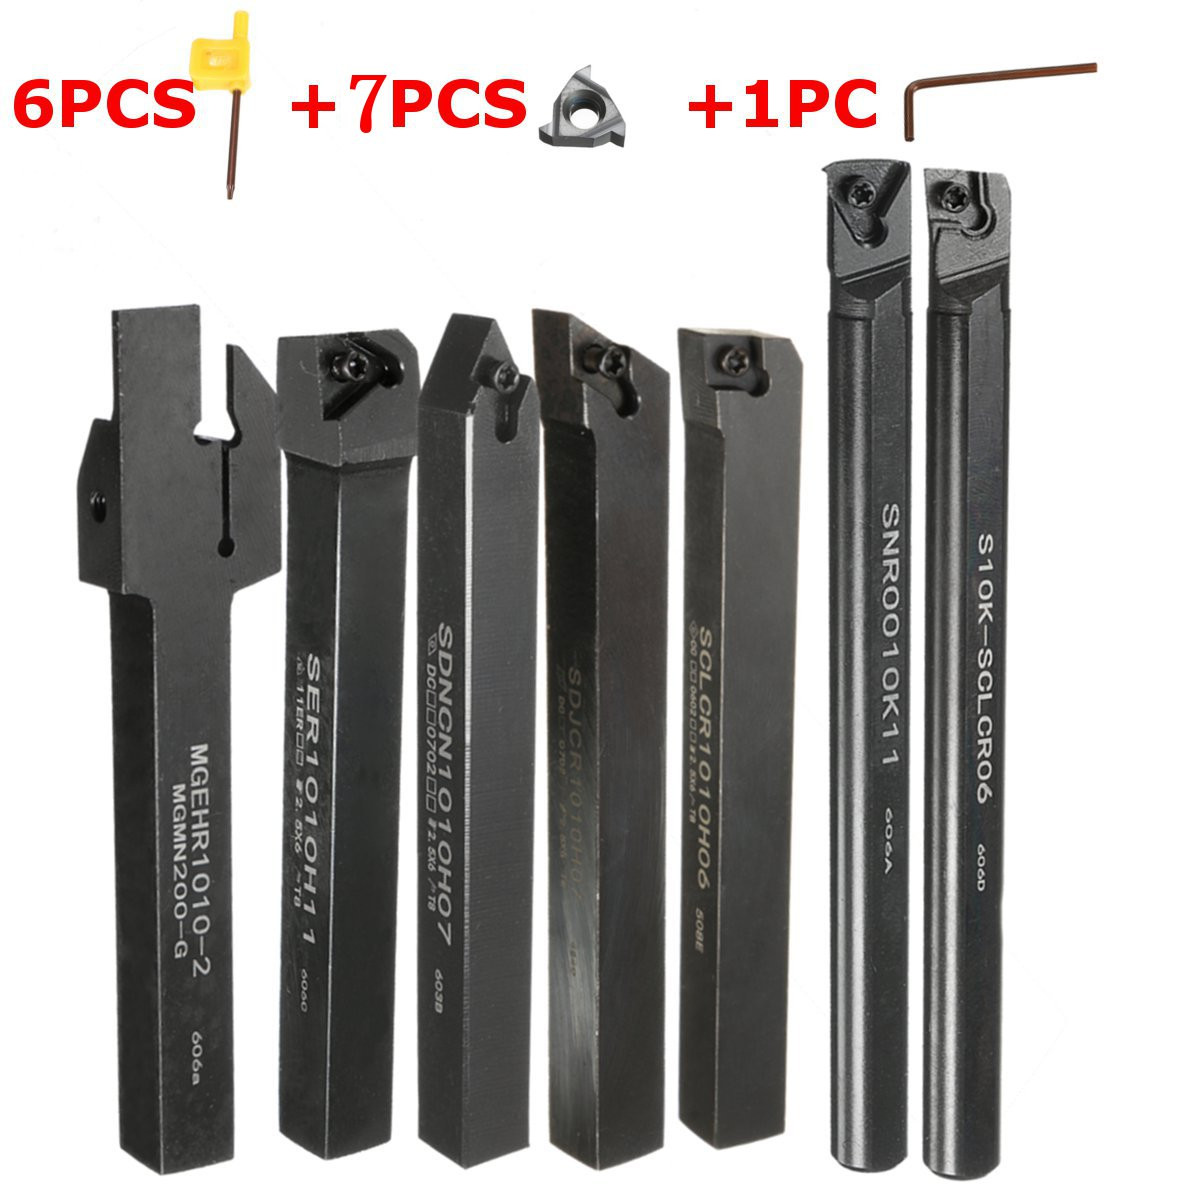 Machifit 7pcs 10mm Shank Lathe Turning Tool Holder Boring Bar With Carbide Inserts